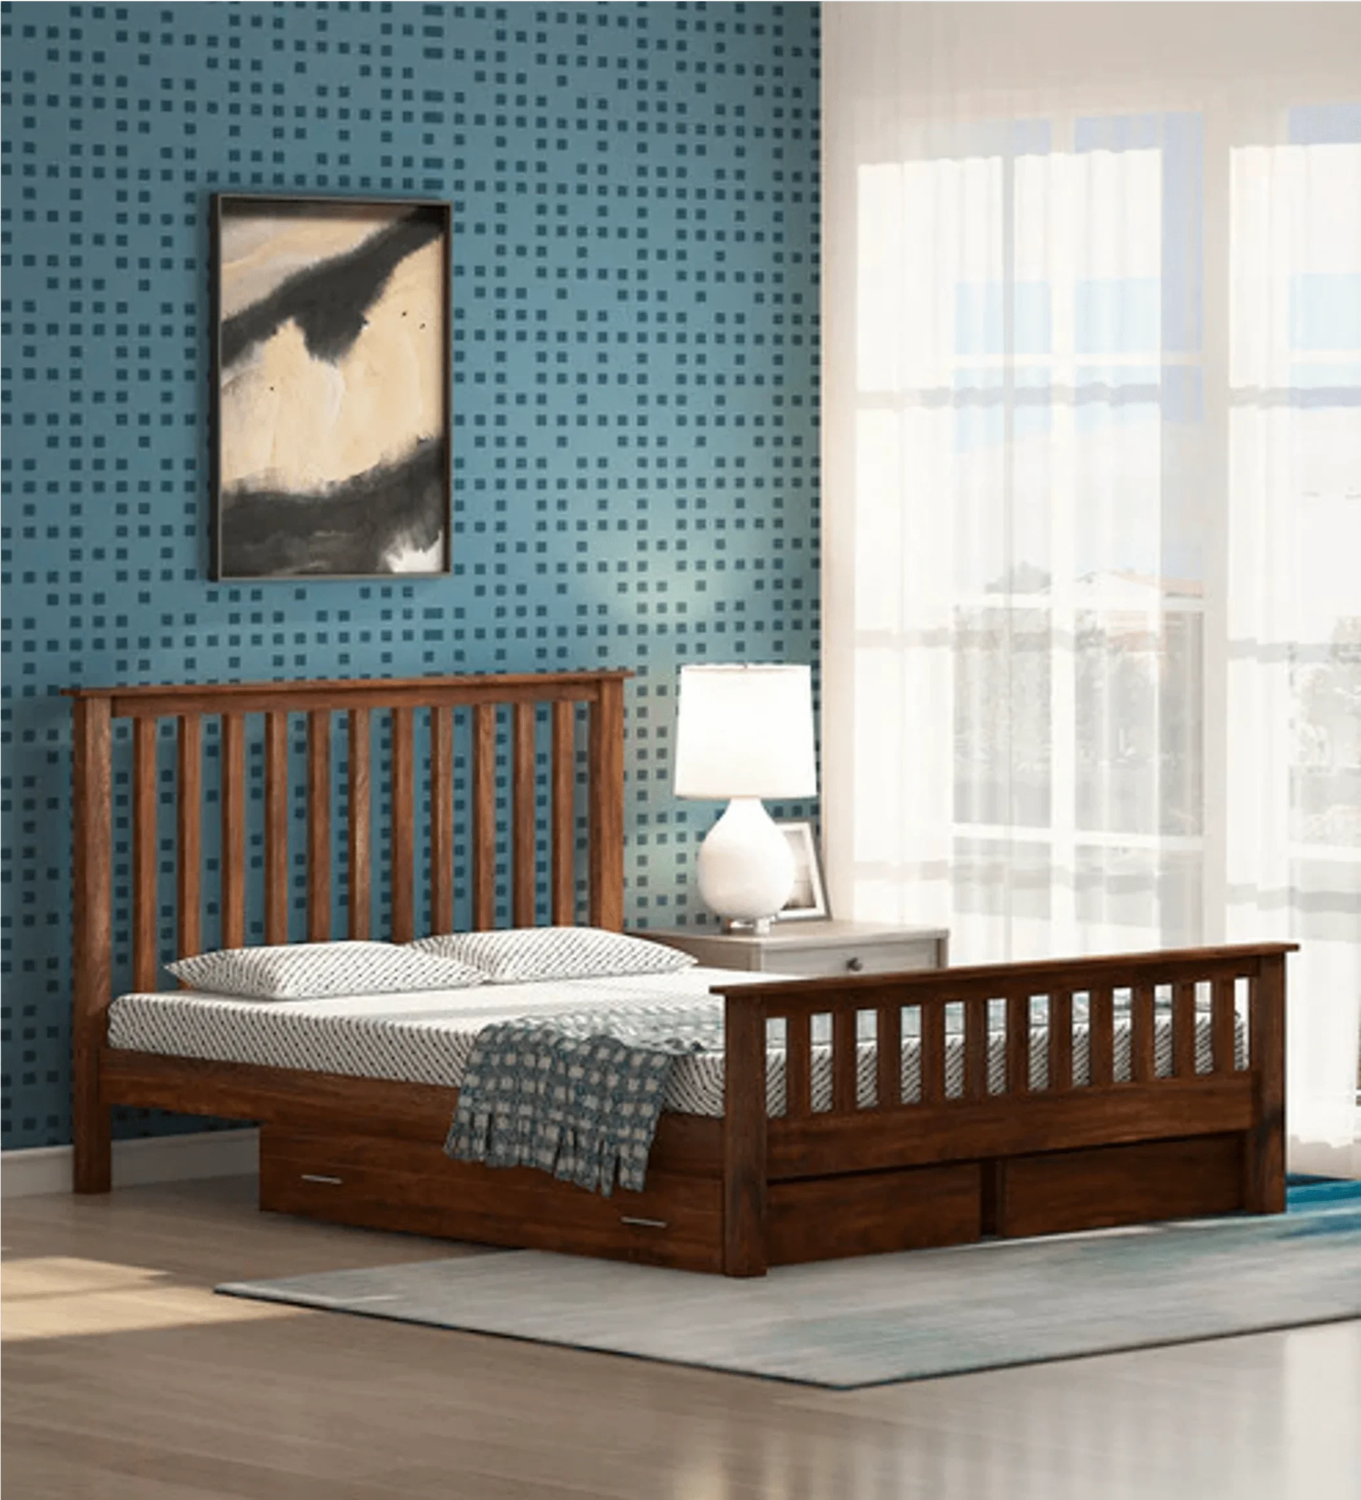 Athens Bed in Brown Color